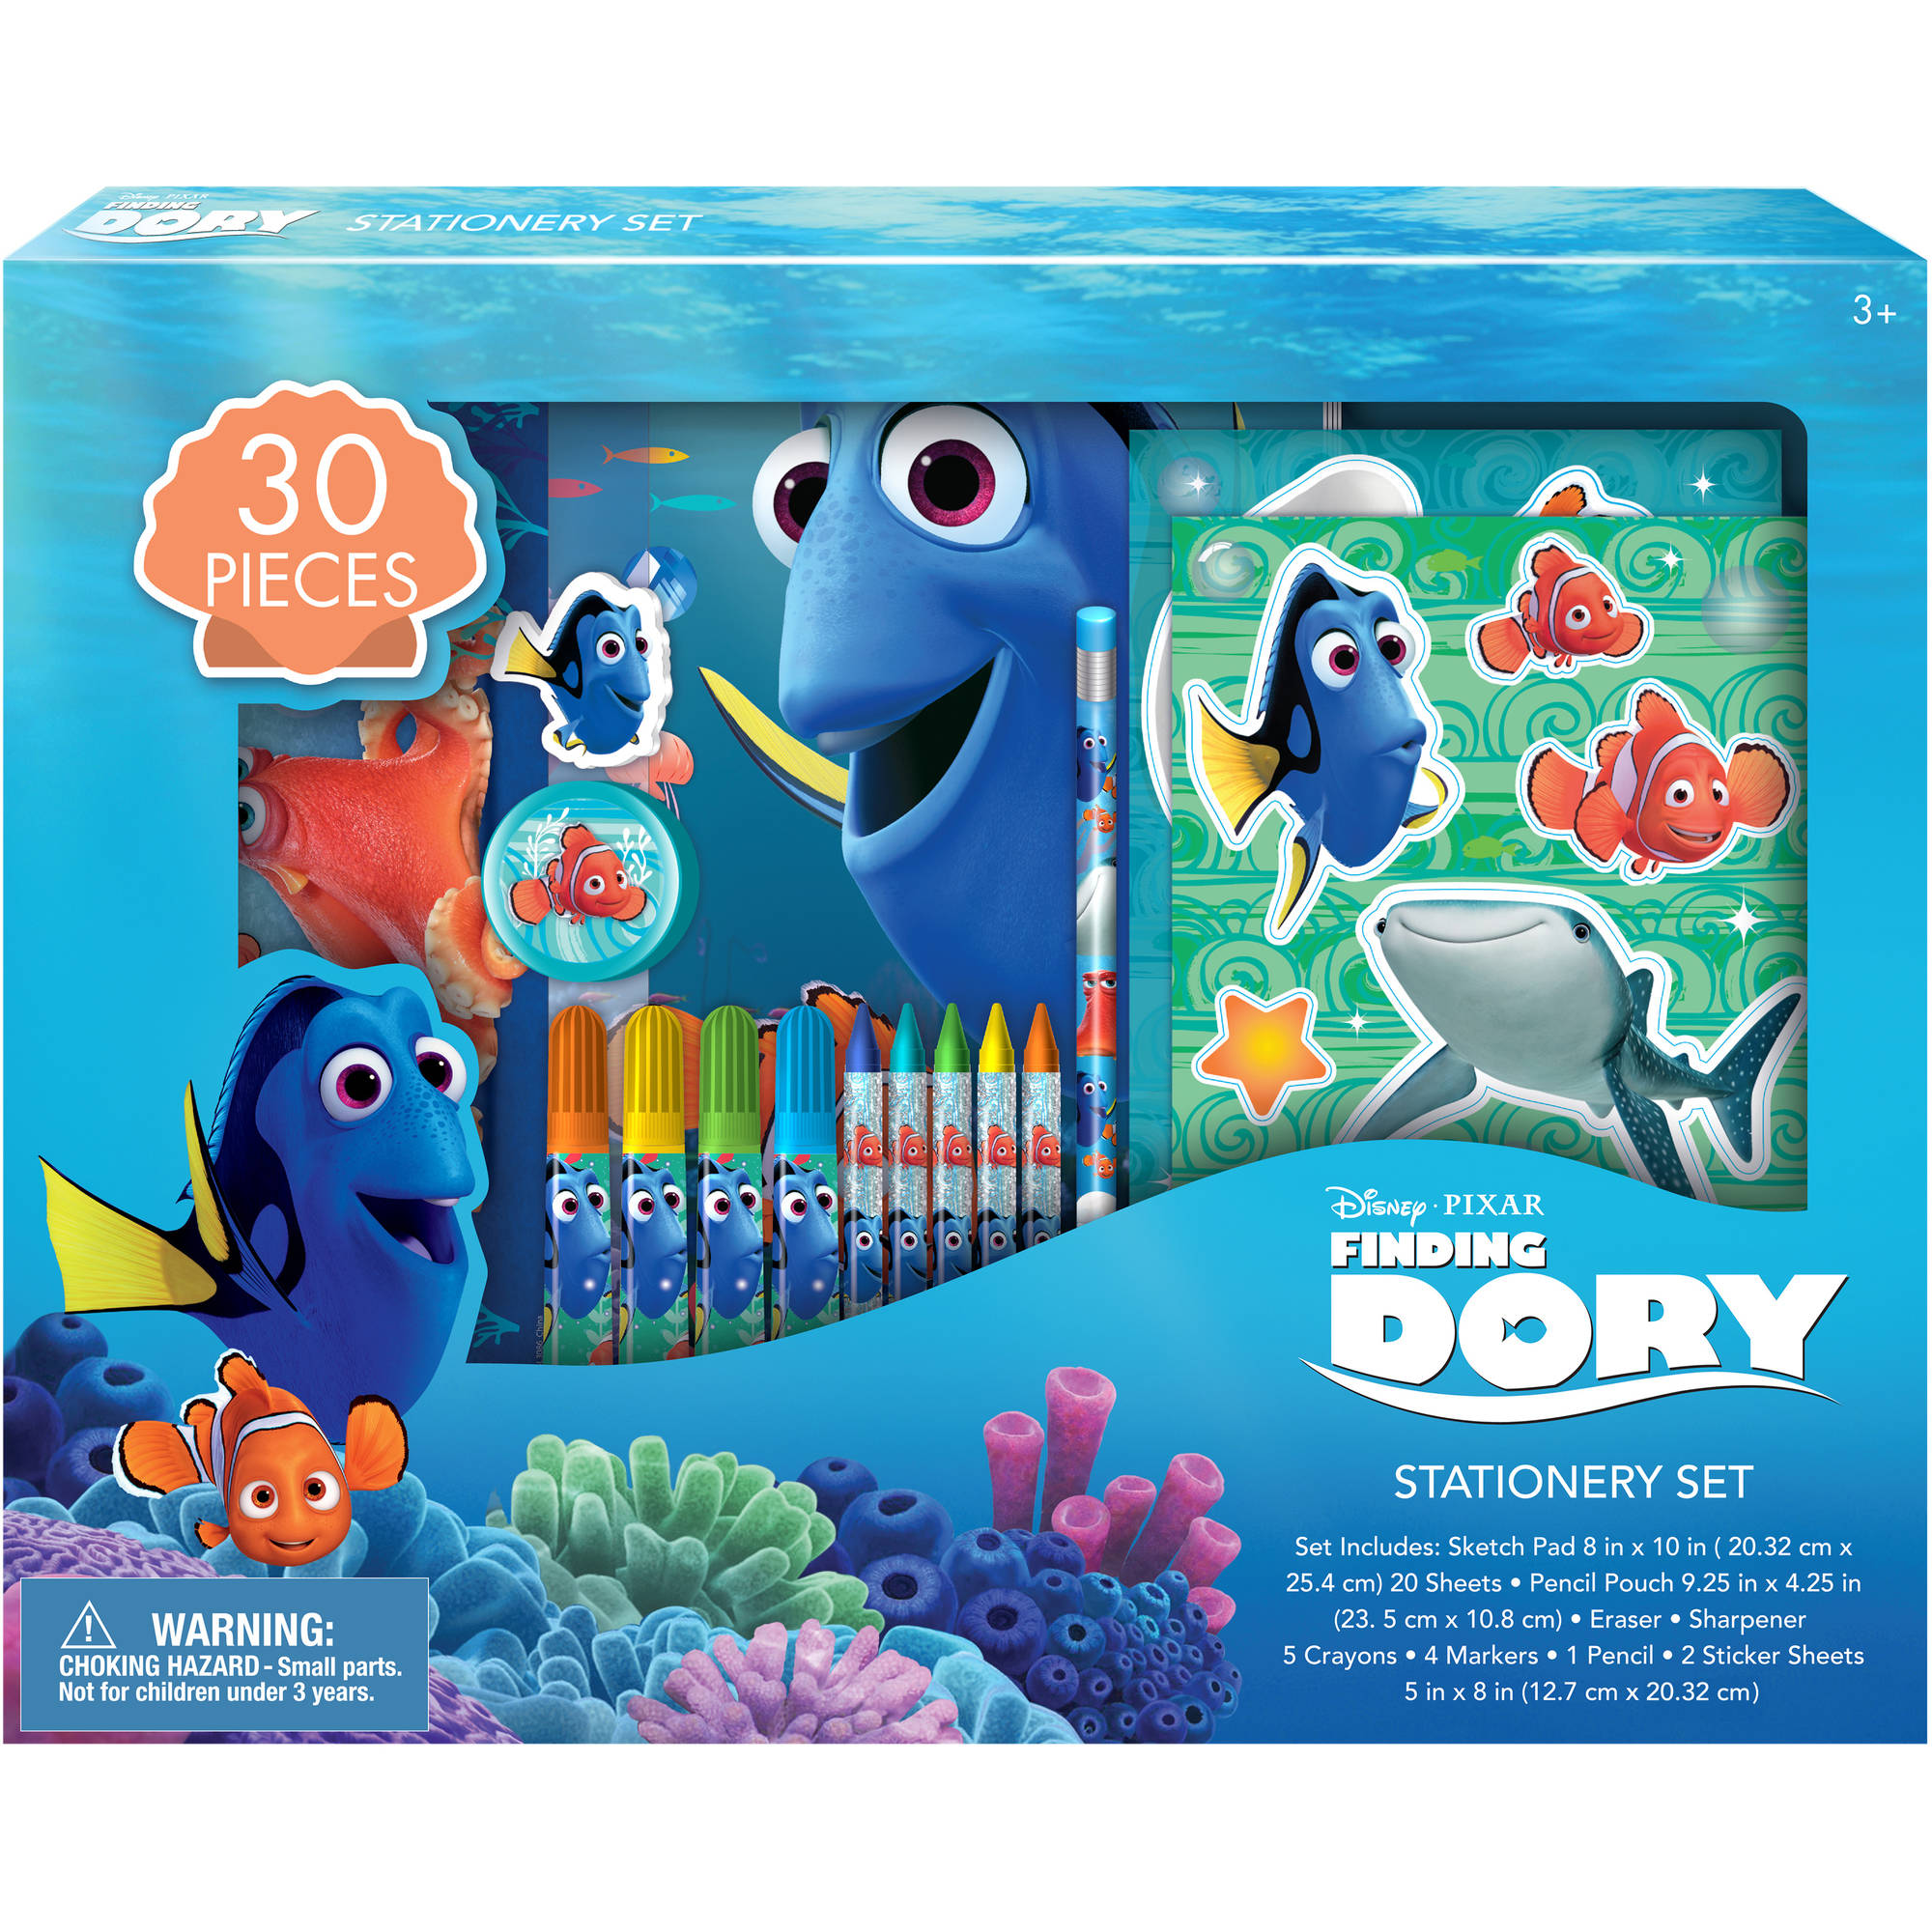 Finding Dory Stationary Set